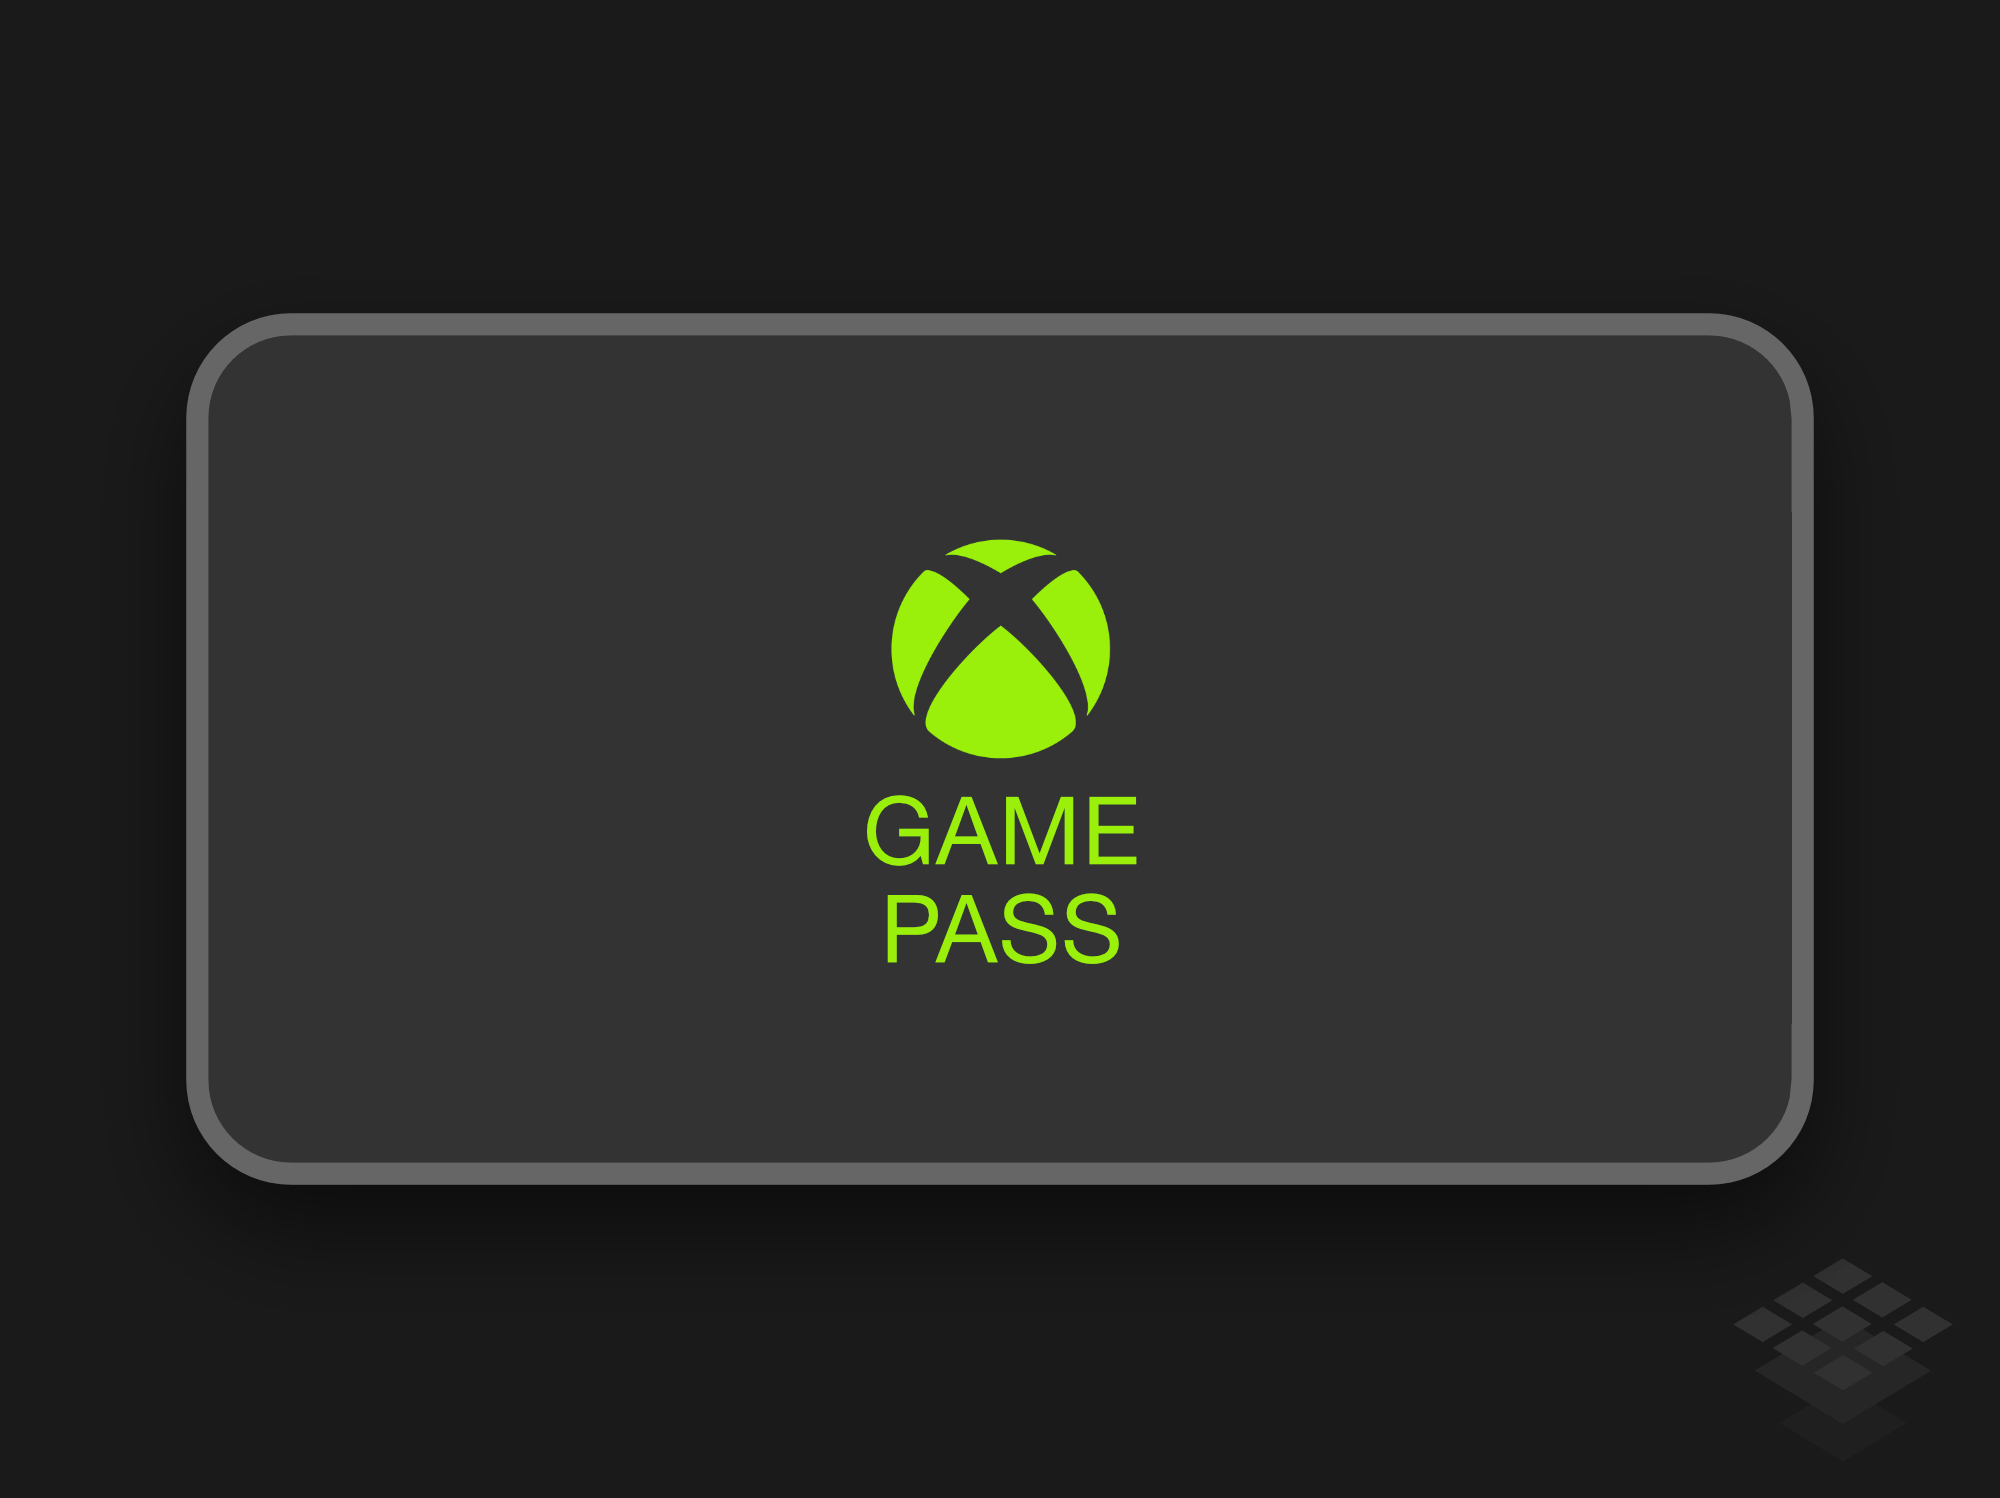 Microsoft officially adds support for Android TV to Xbox Game Pass app